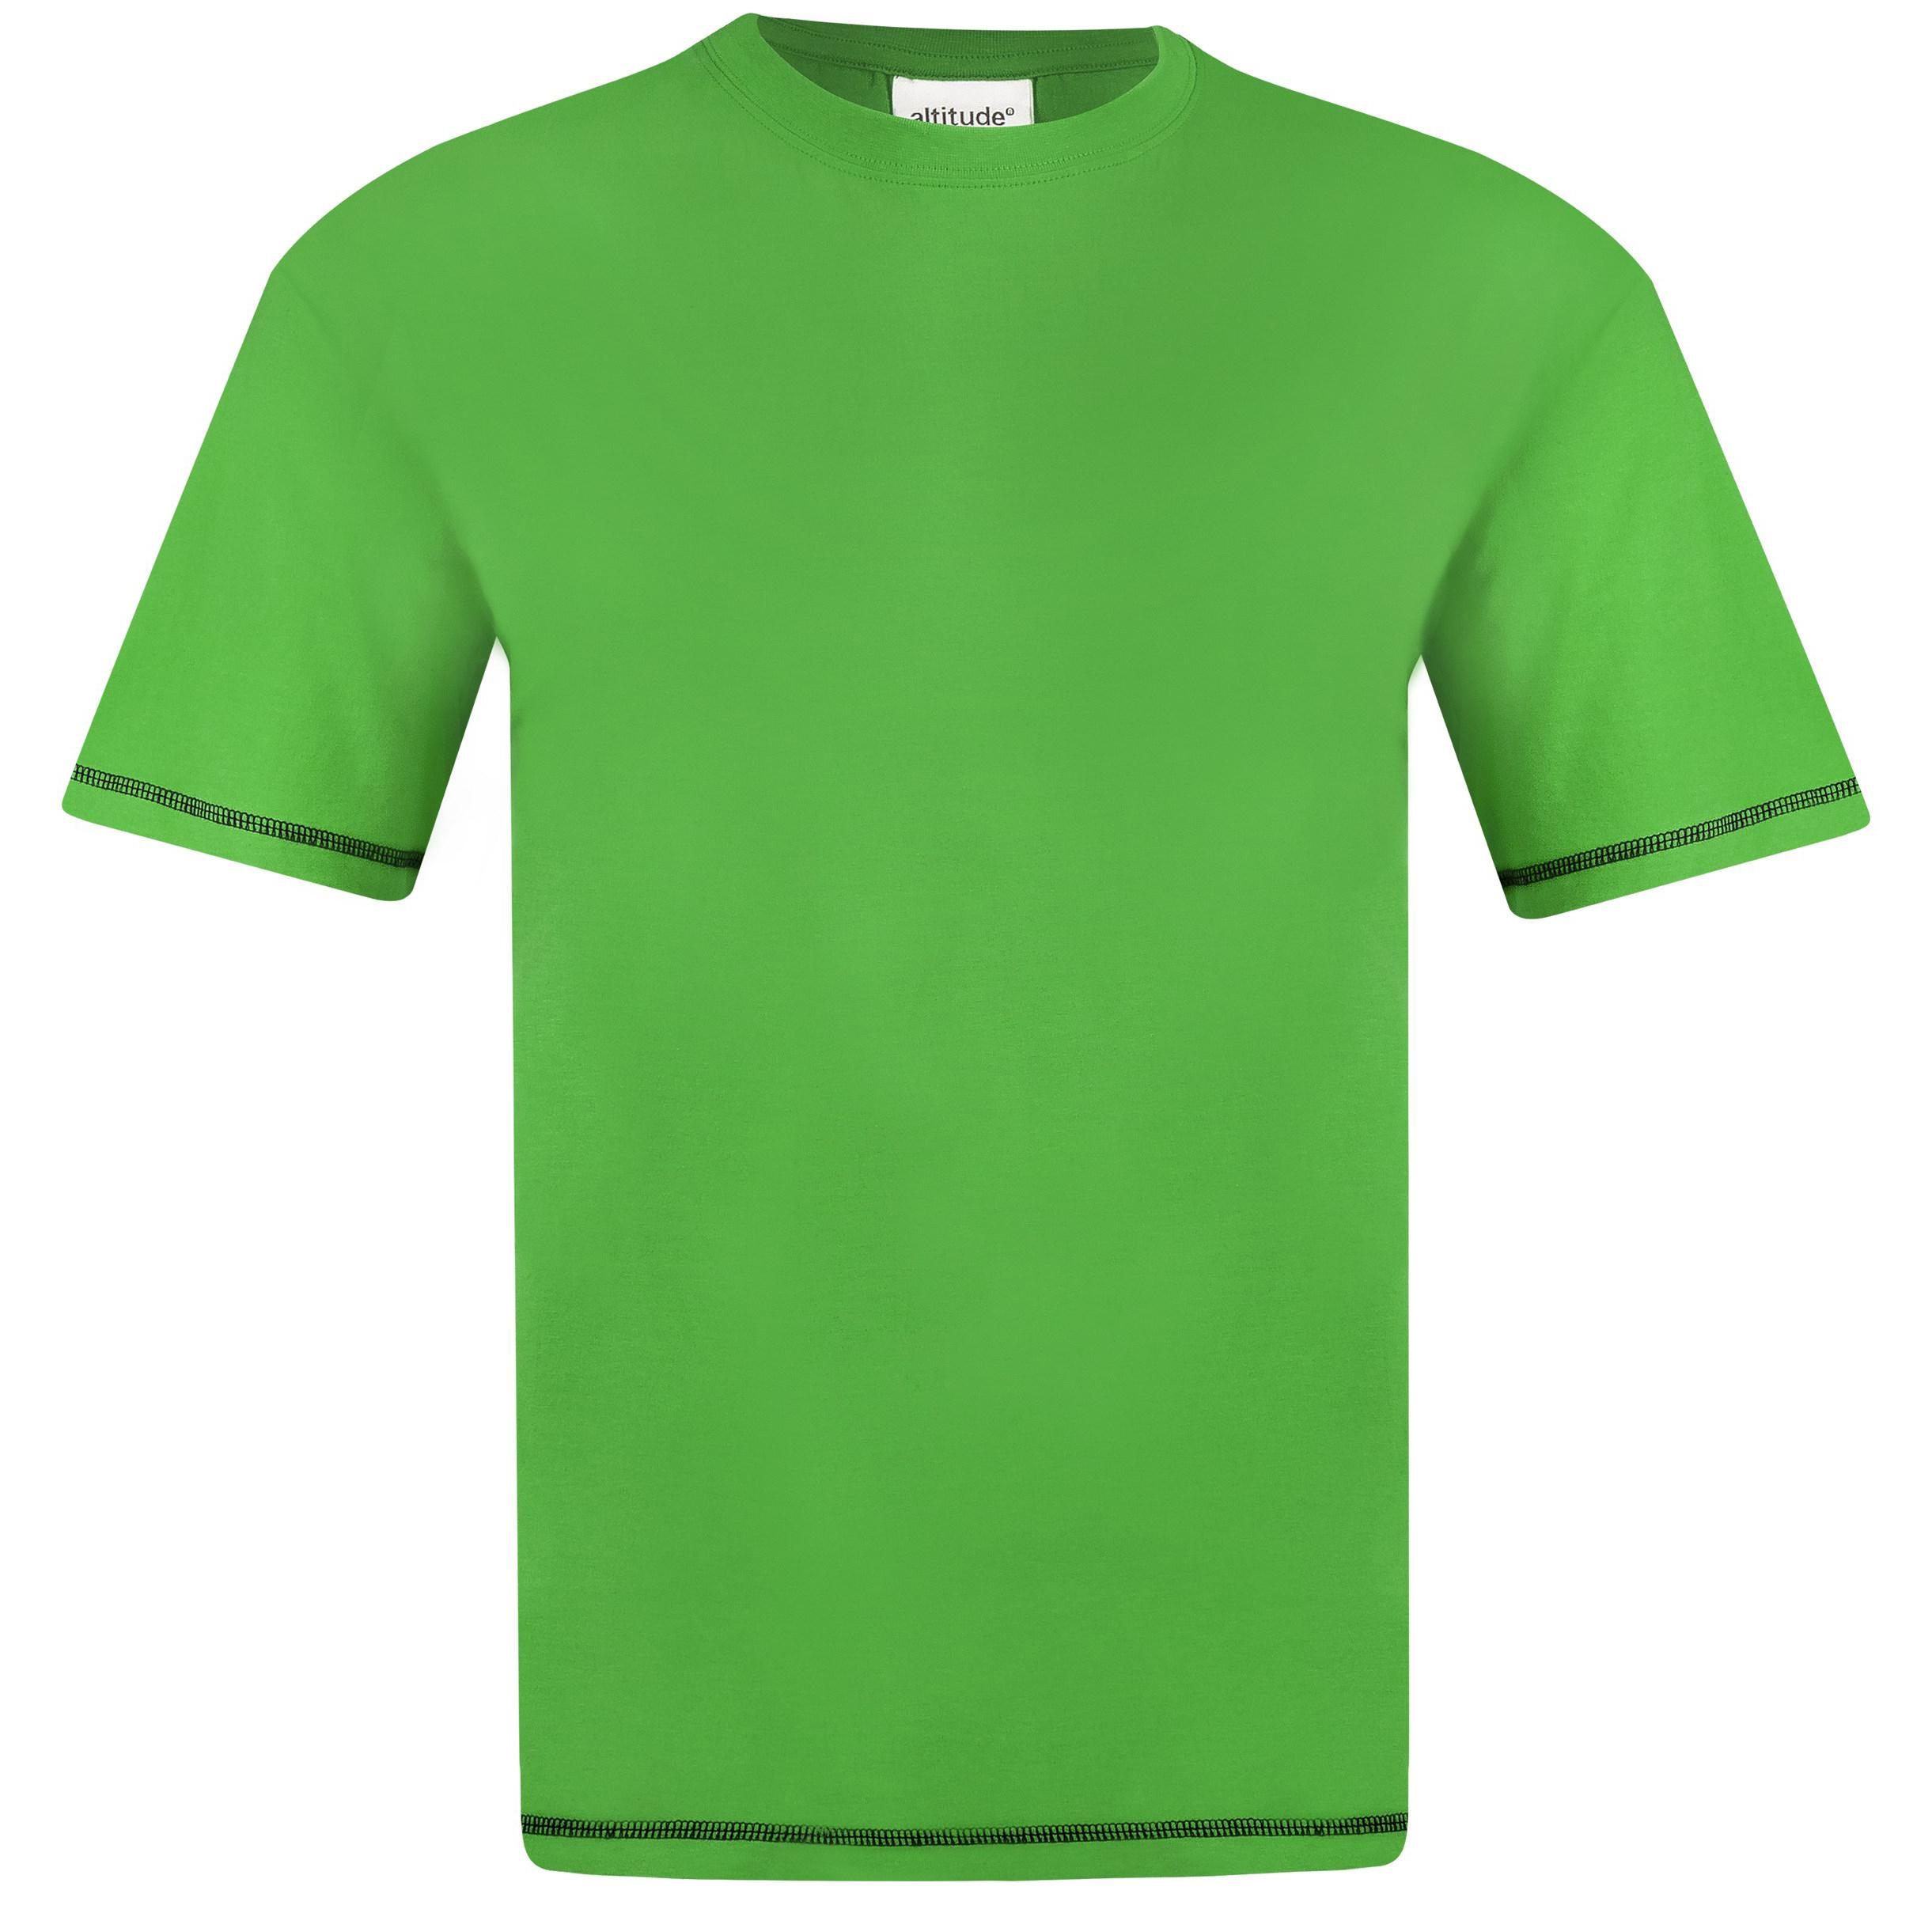 Mens Velocity T-shirt - Lime Only